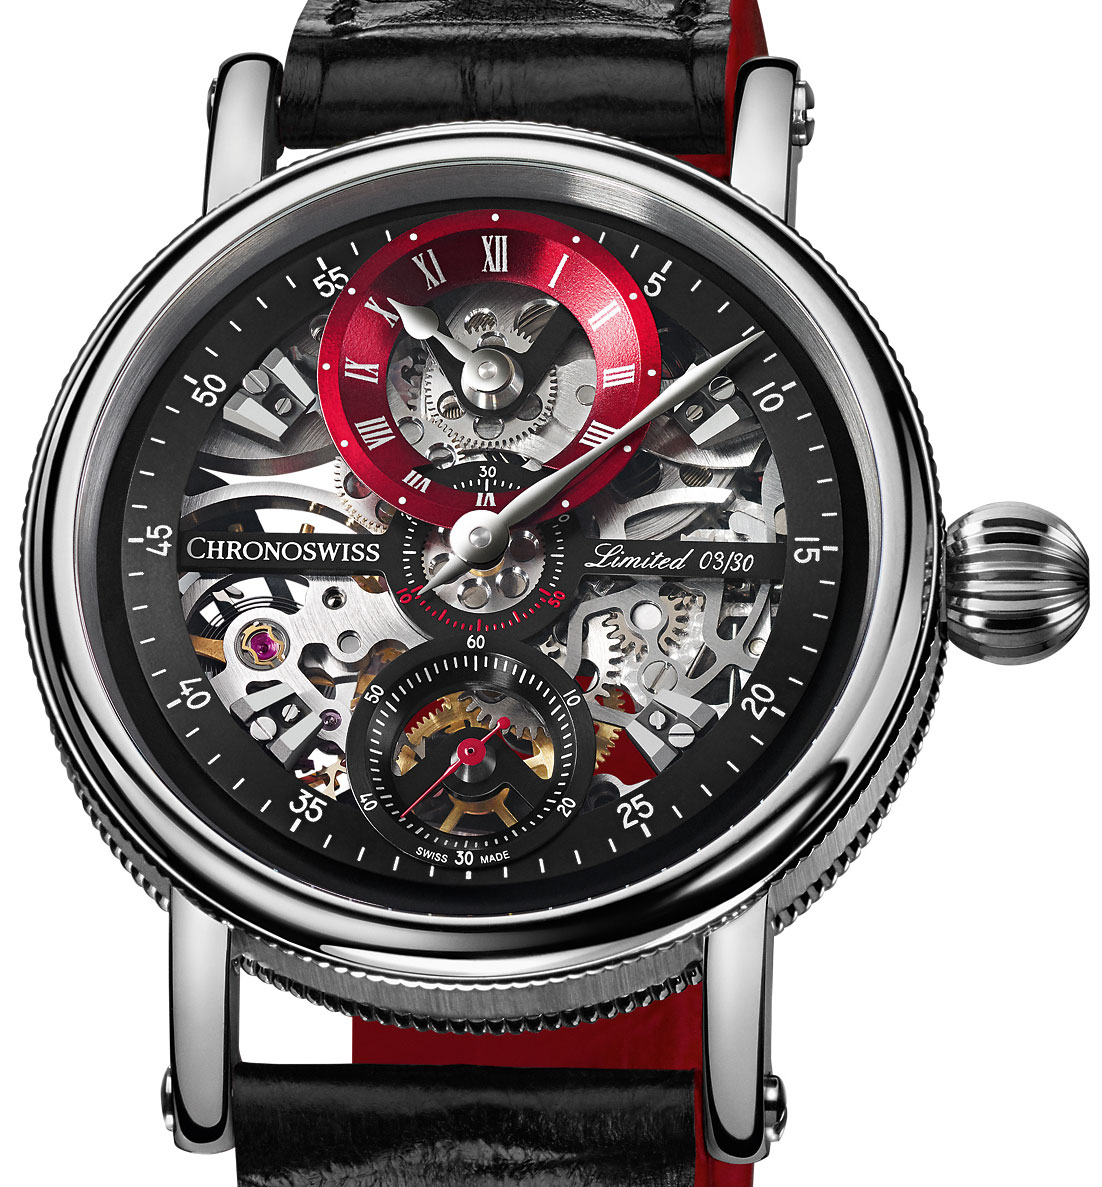 Chronoswiss Sirius Flying Grand Regulator Skeleton Chronoswiss Watches History Replica Watch Releases